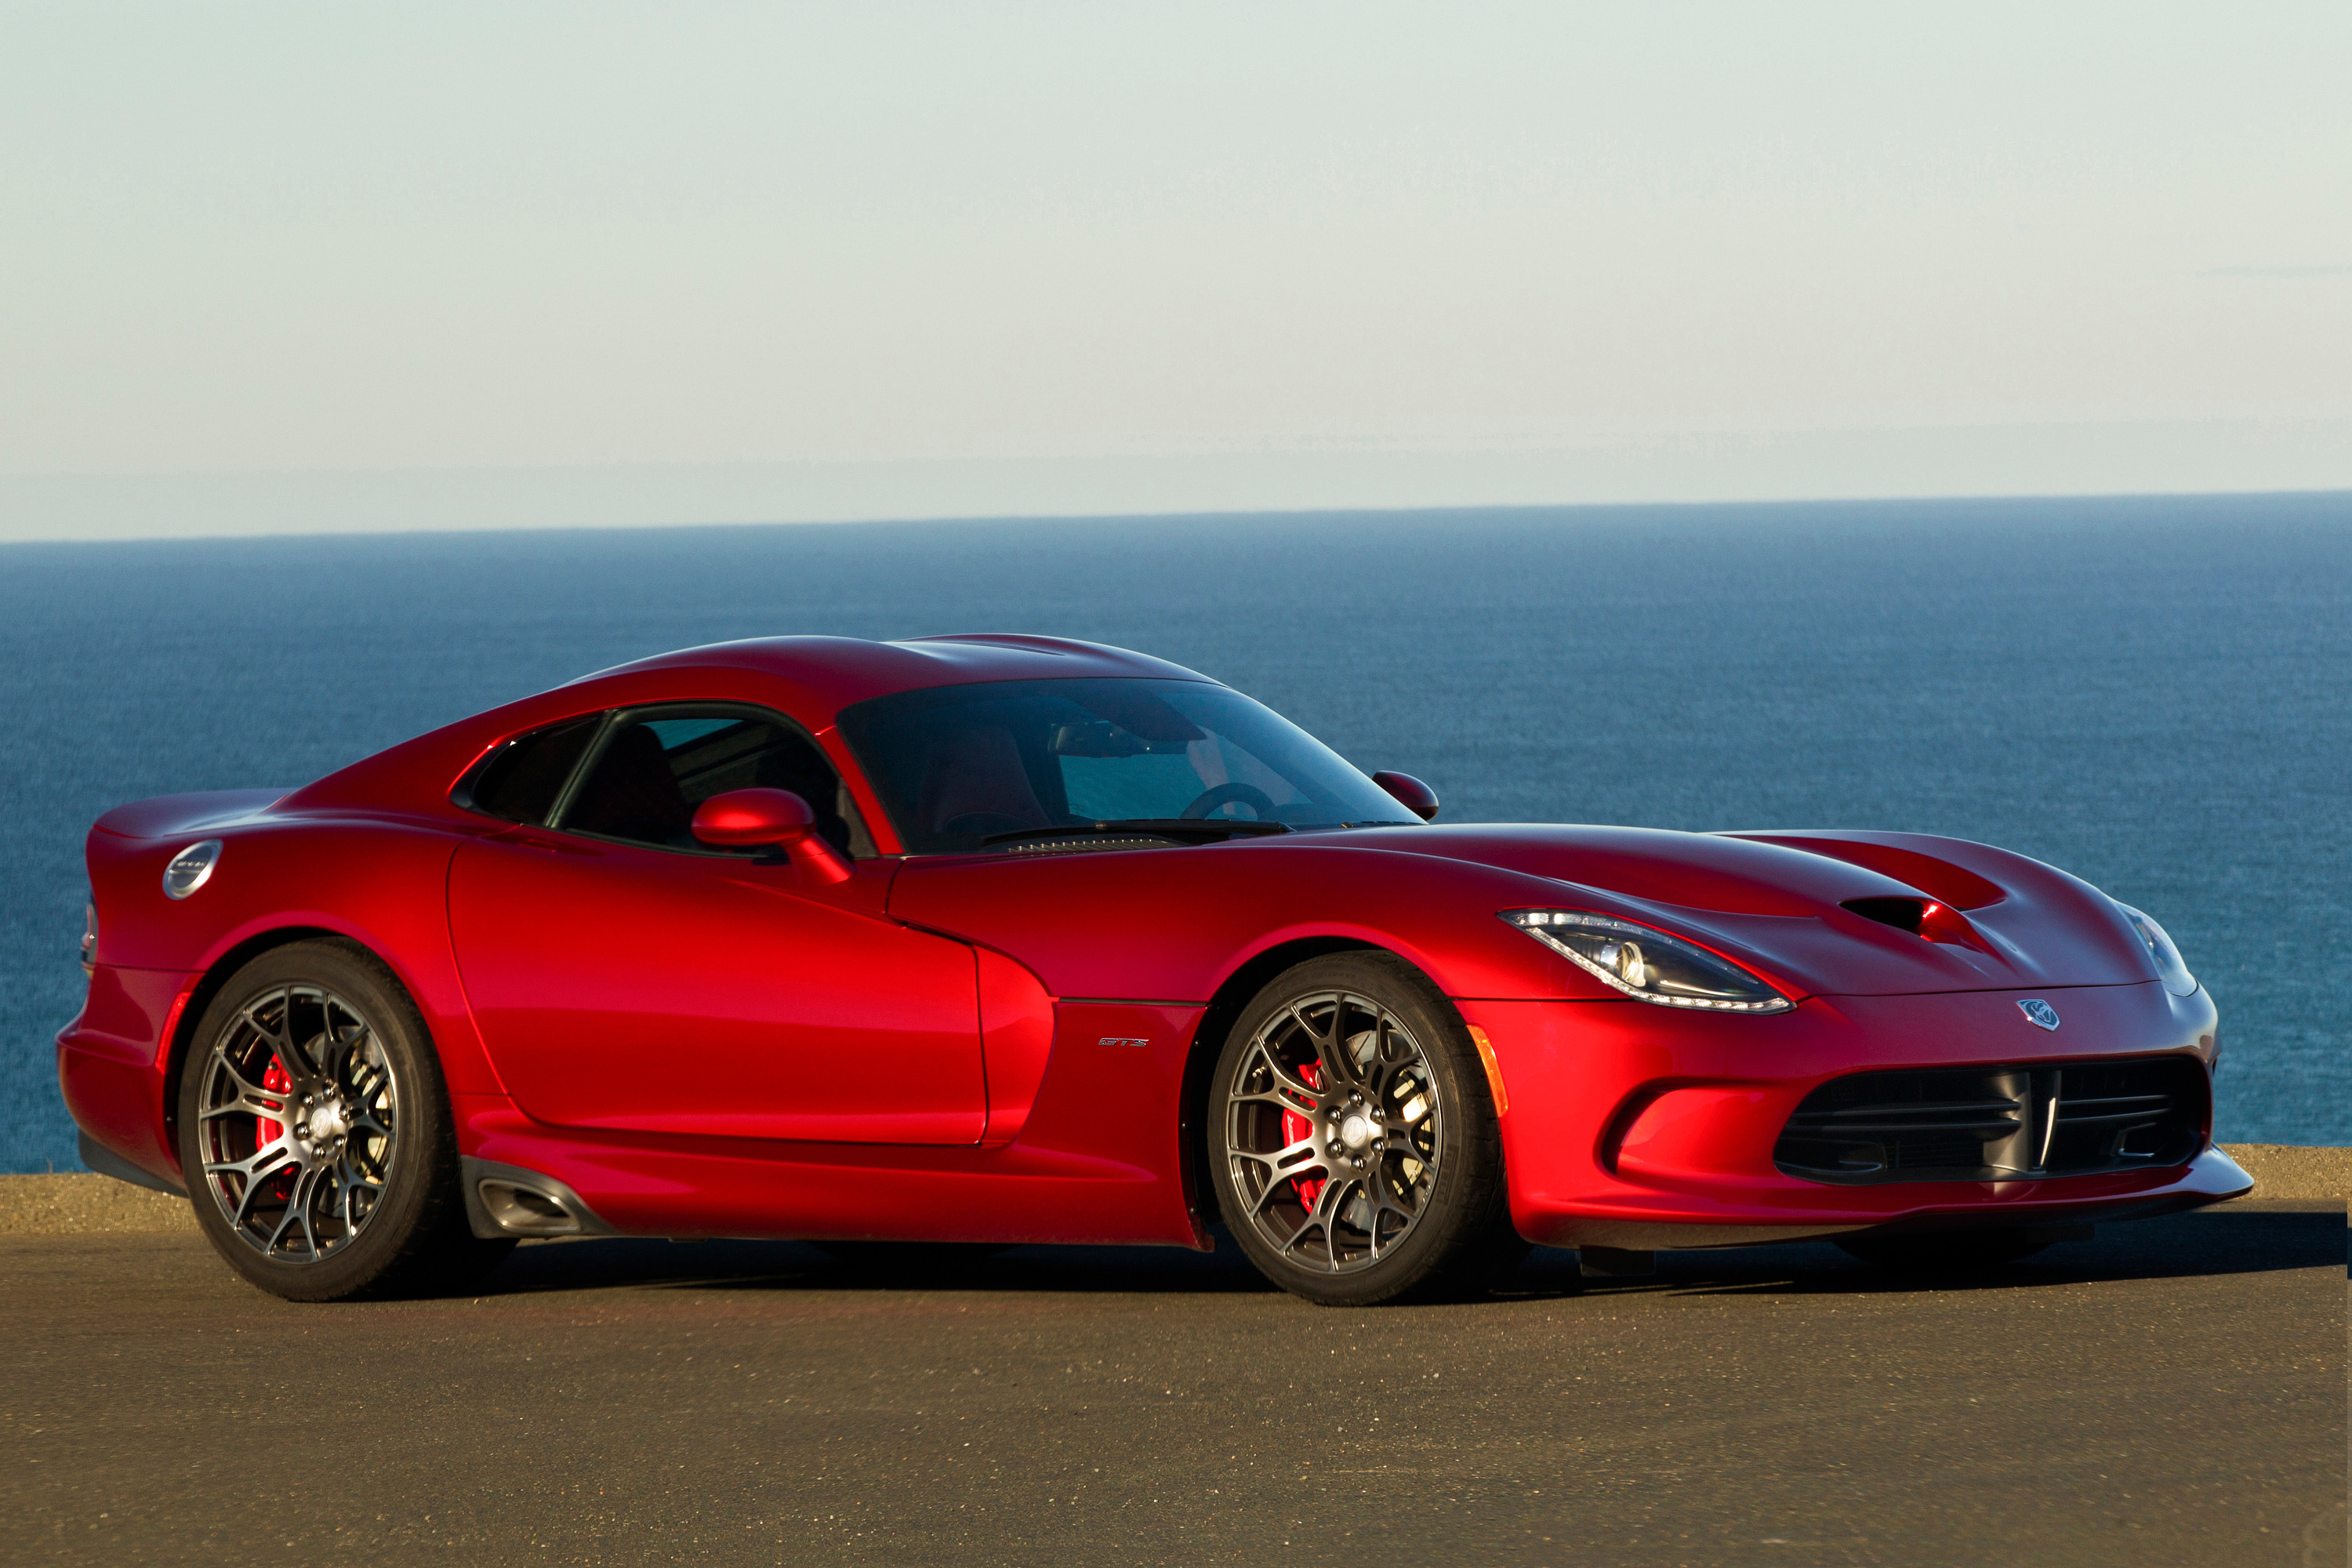 Dodge viper american classic sells out in 40 minutes cnn style publicscrutiny Choice Image